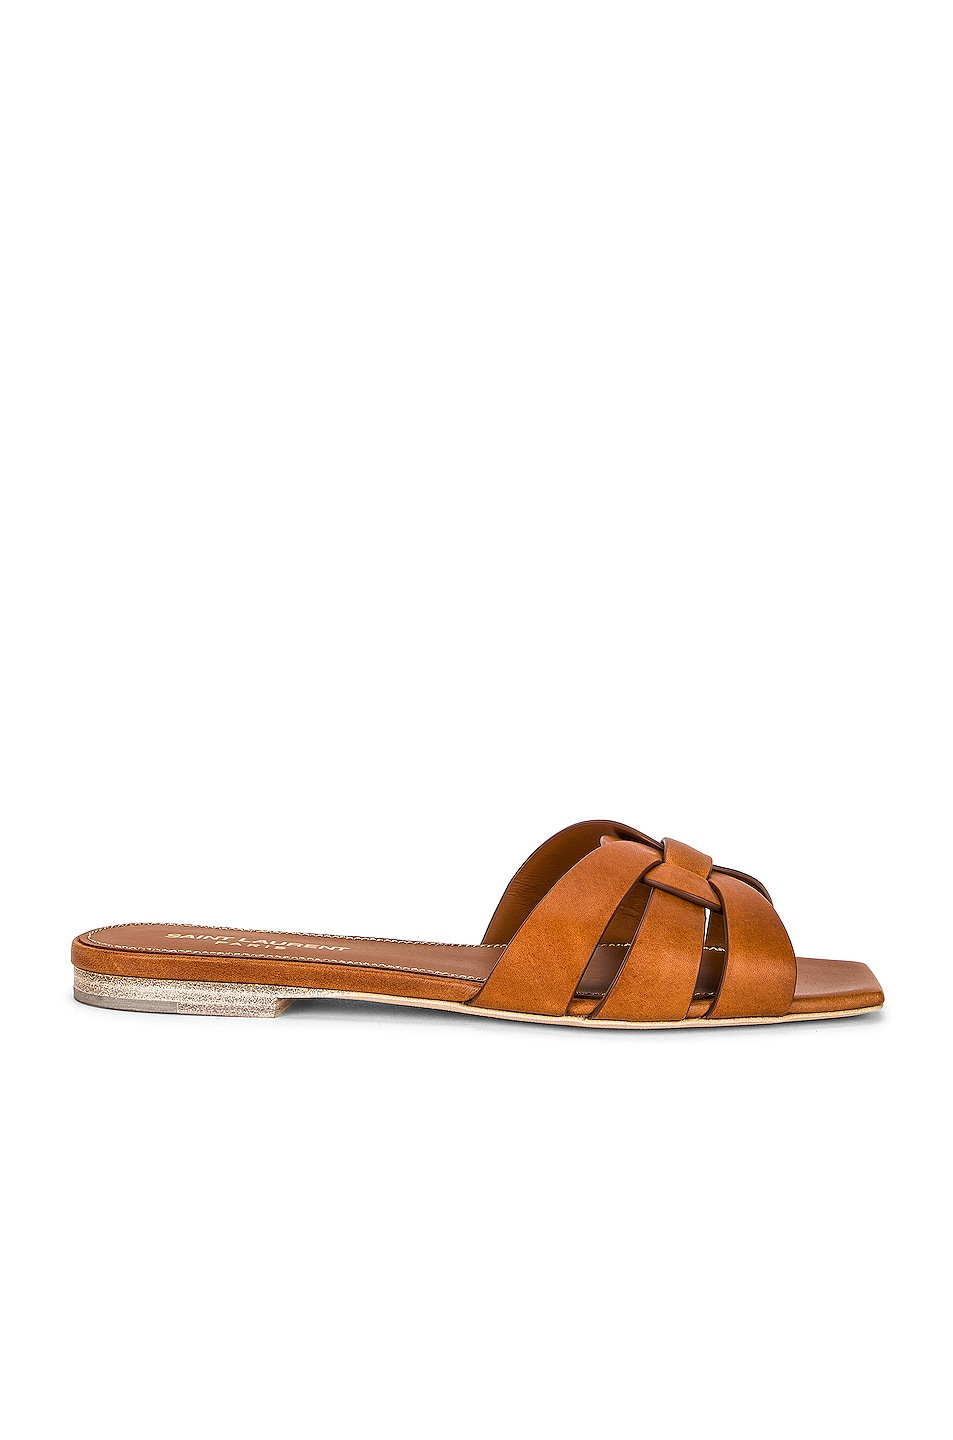 Image 1 of Saint Laurent Tribute Flat Sandals in Amber